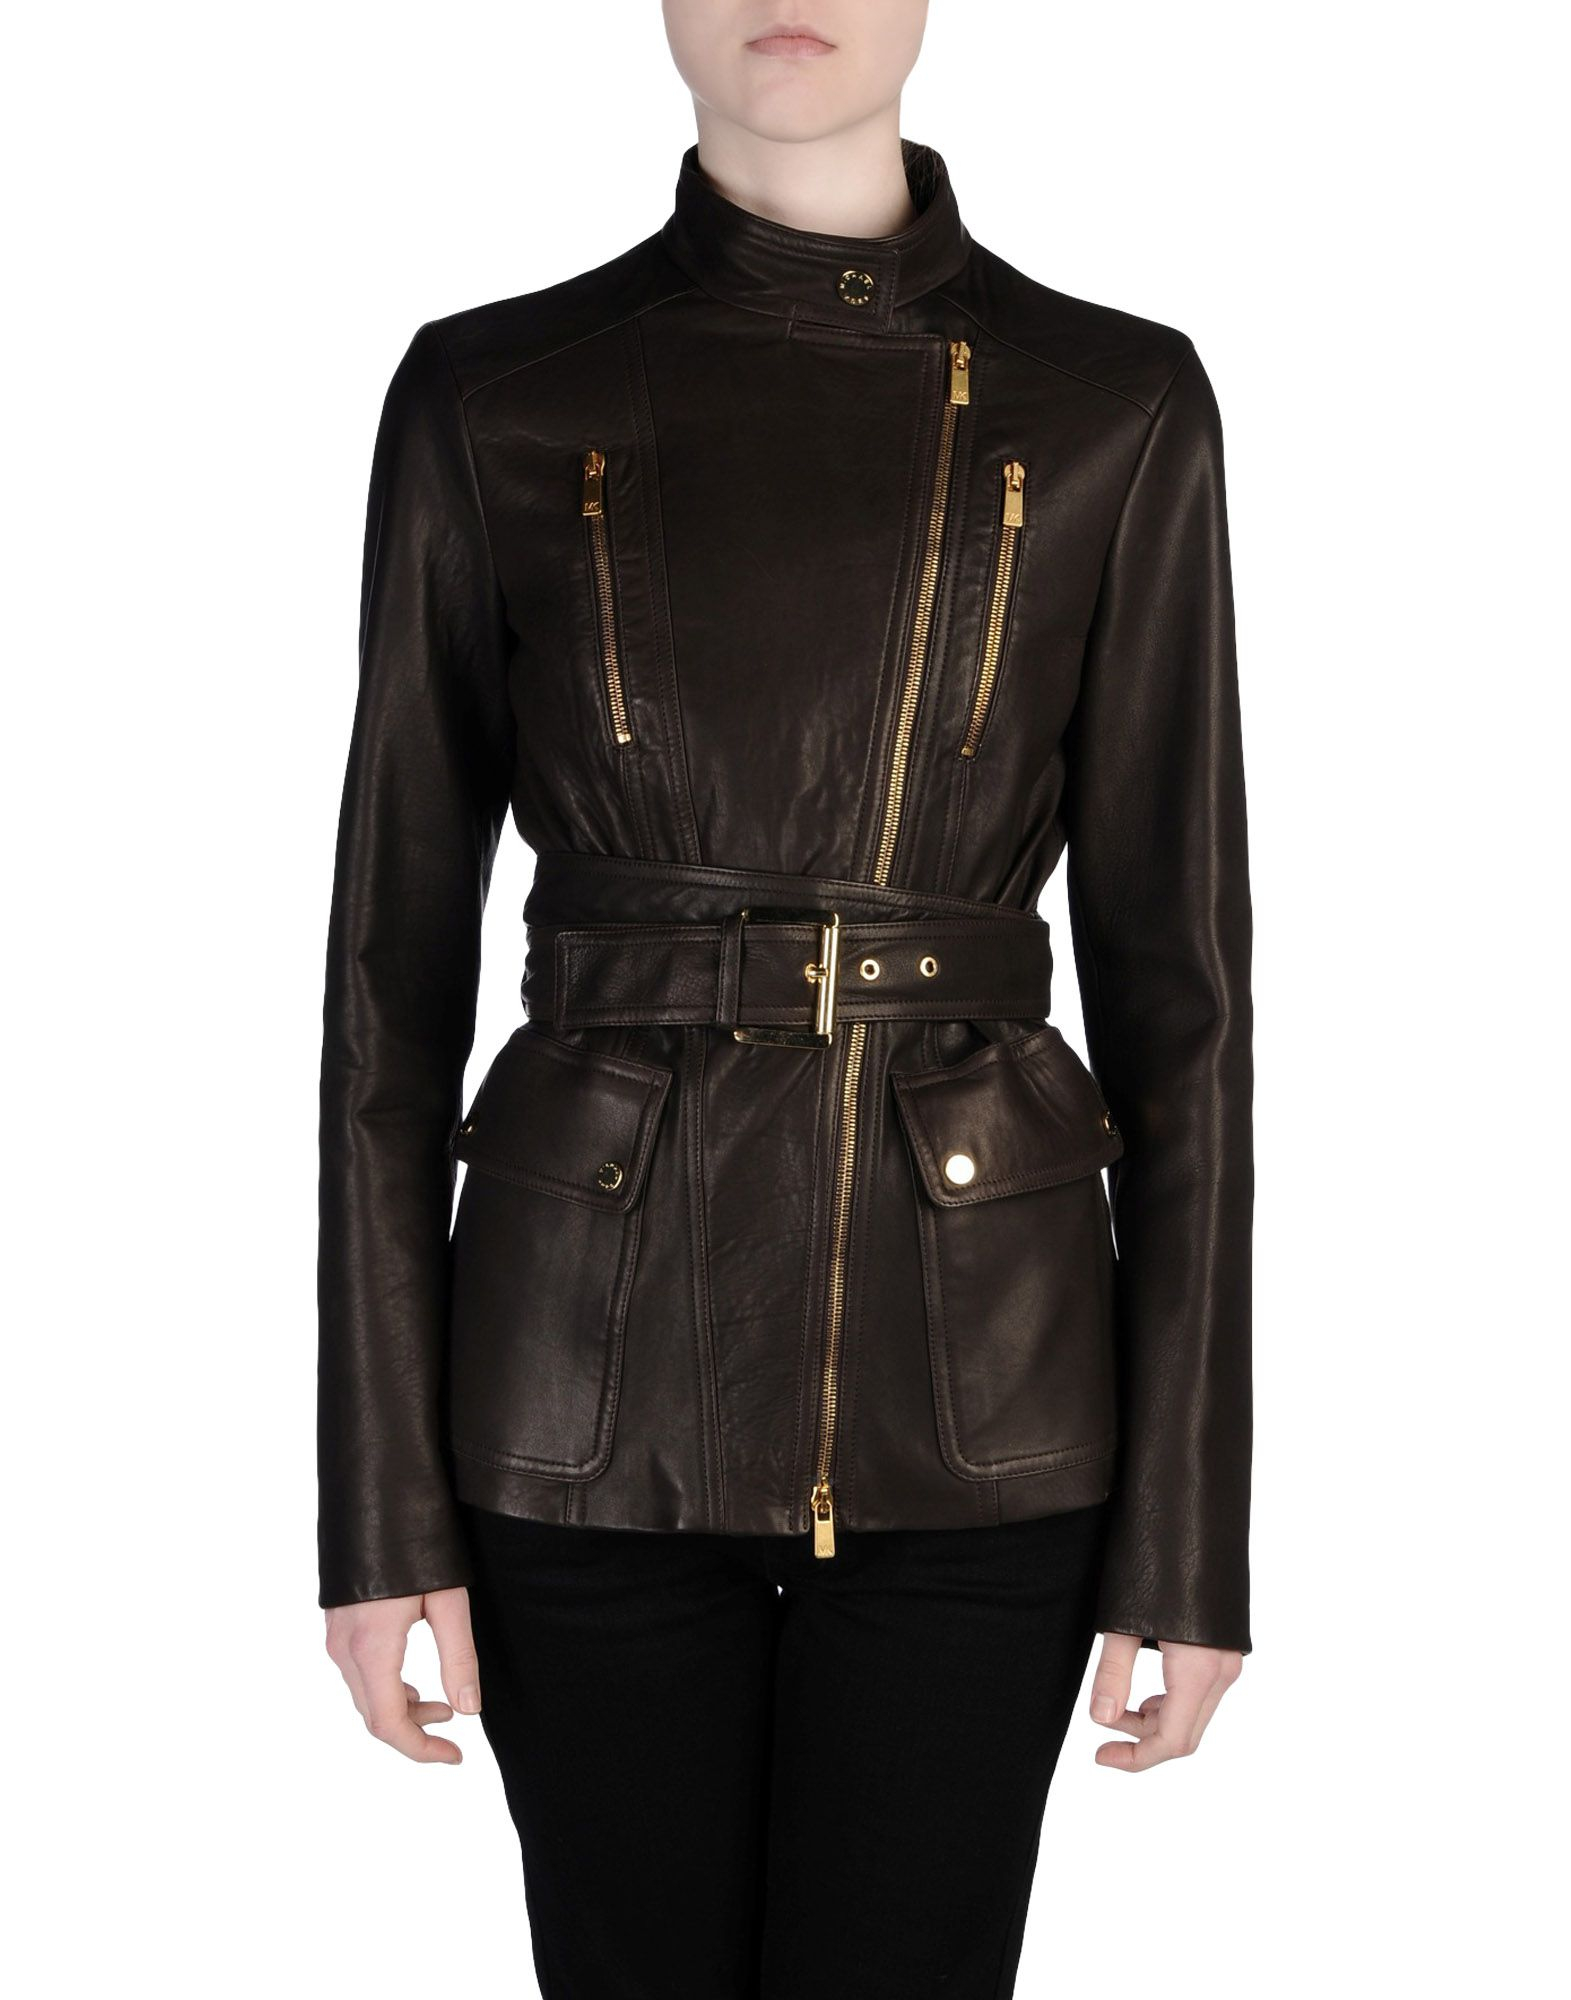 michael kors jacket in brown dark brown lyst. Black Bedroom Furniture Sets. Home Design Ideas